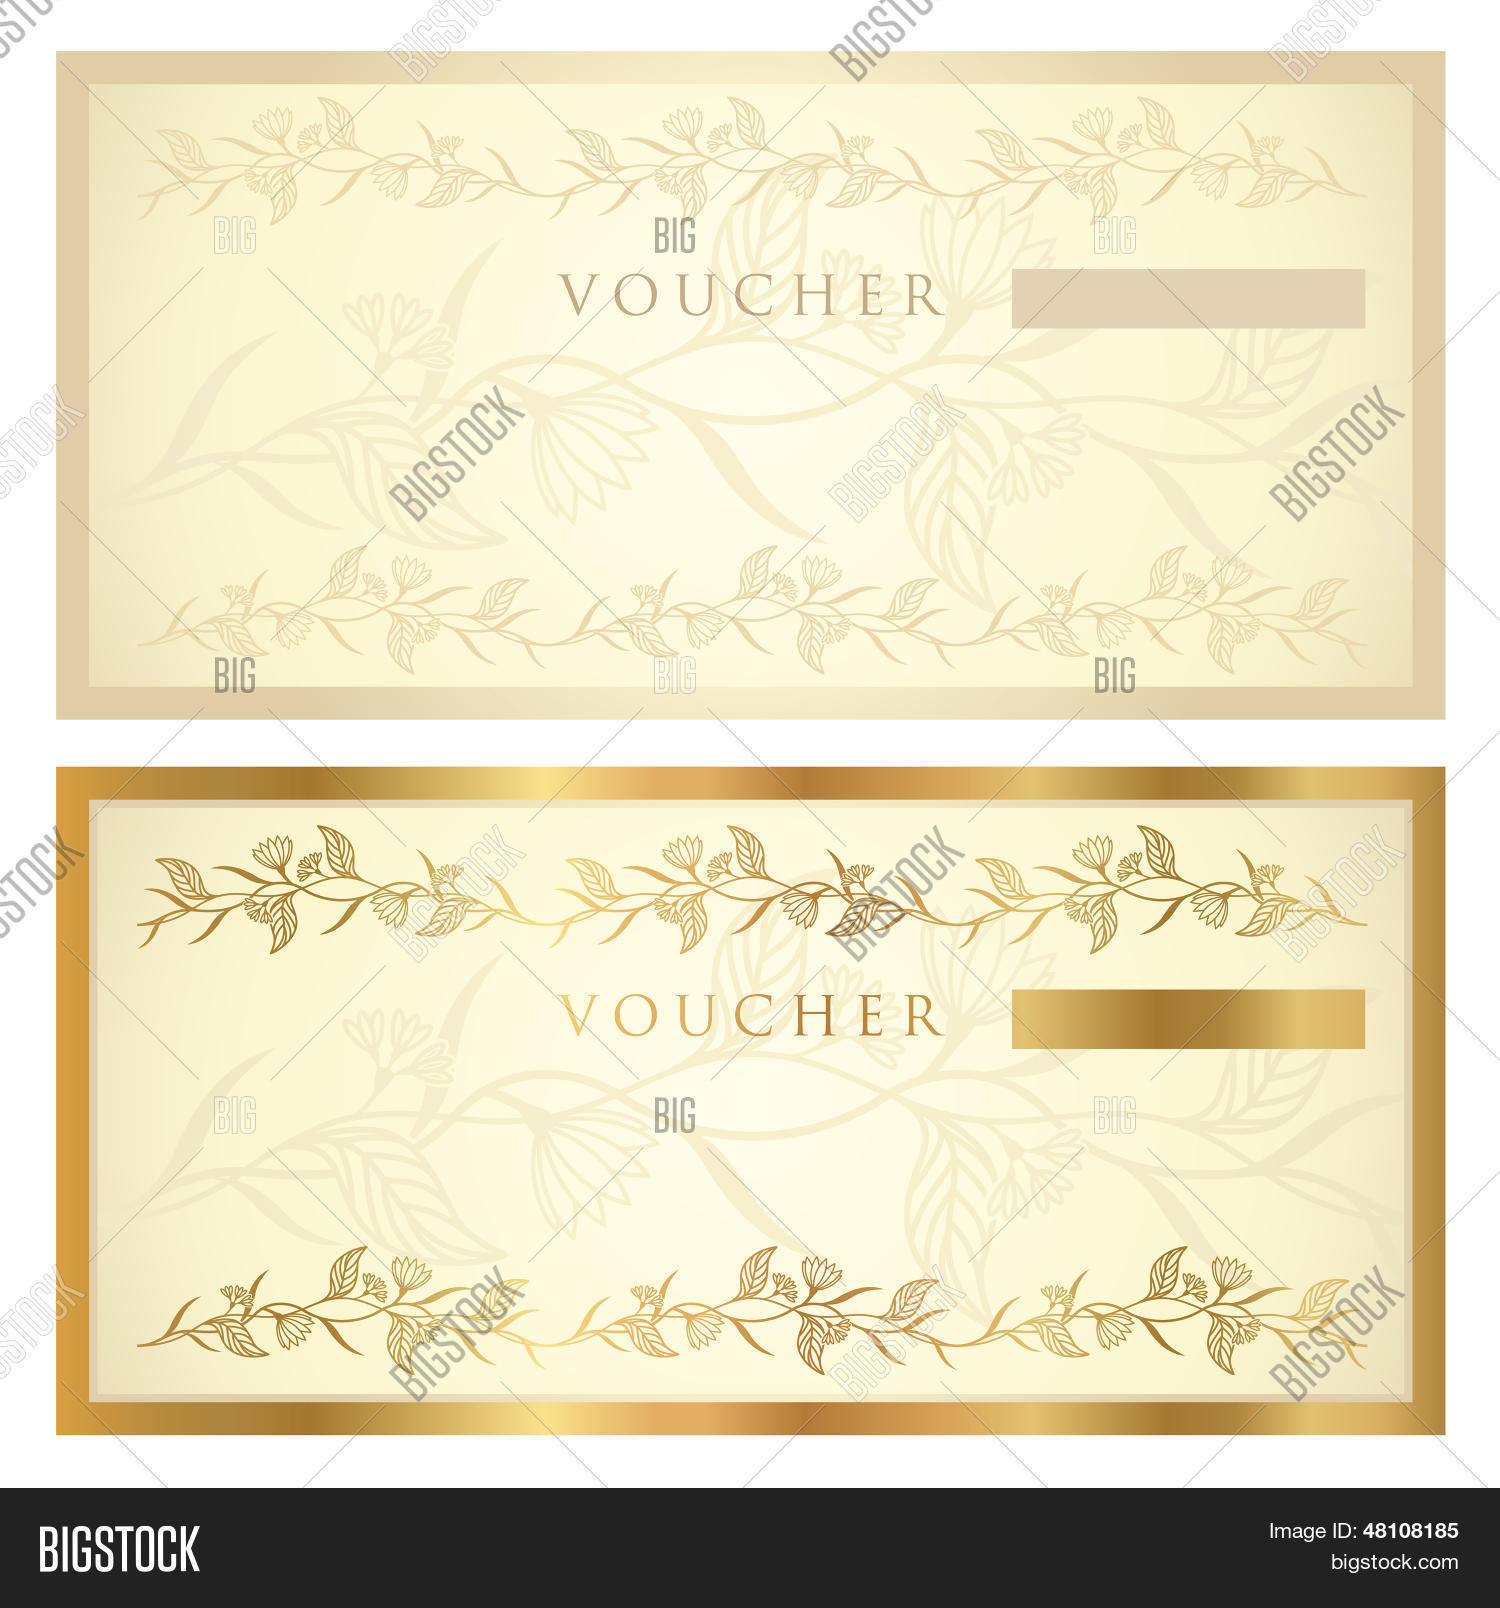 cheque voucher template - gift certificate voucher coupon template with banknote